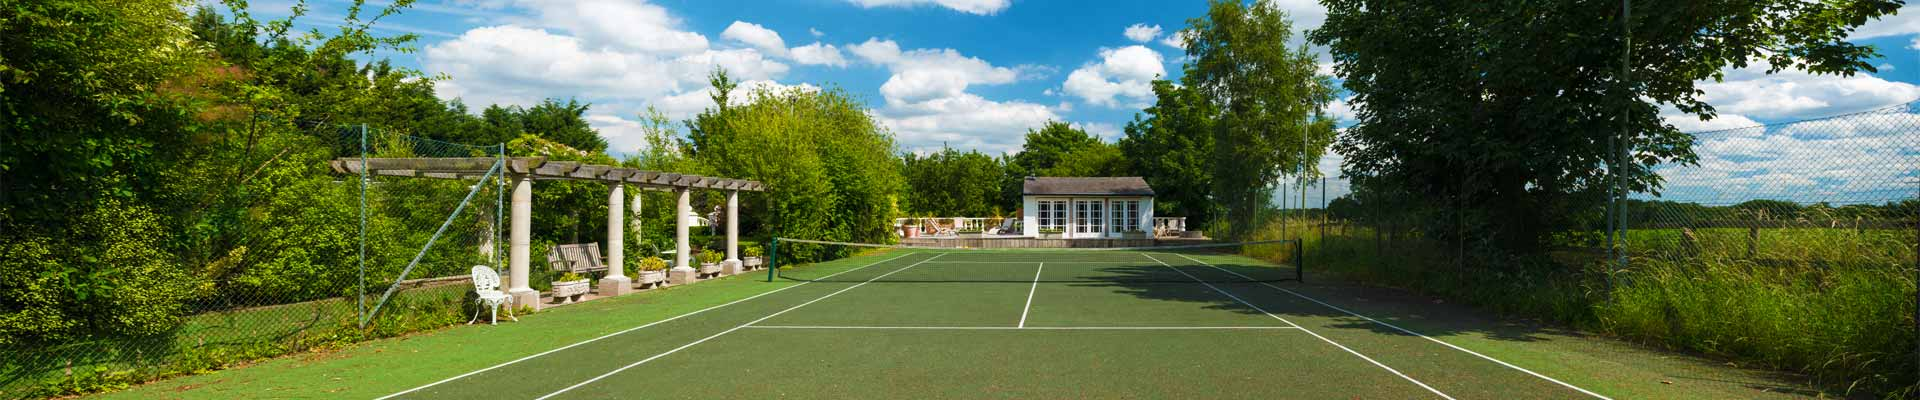 Photo of High House' tennis court